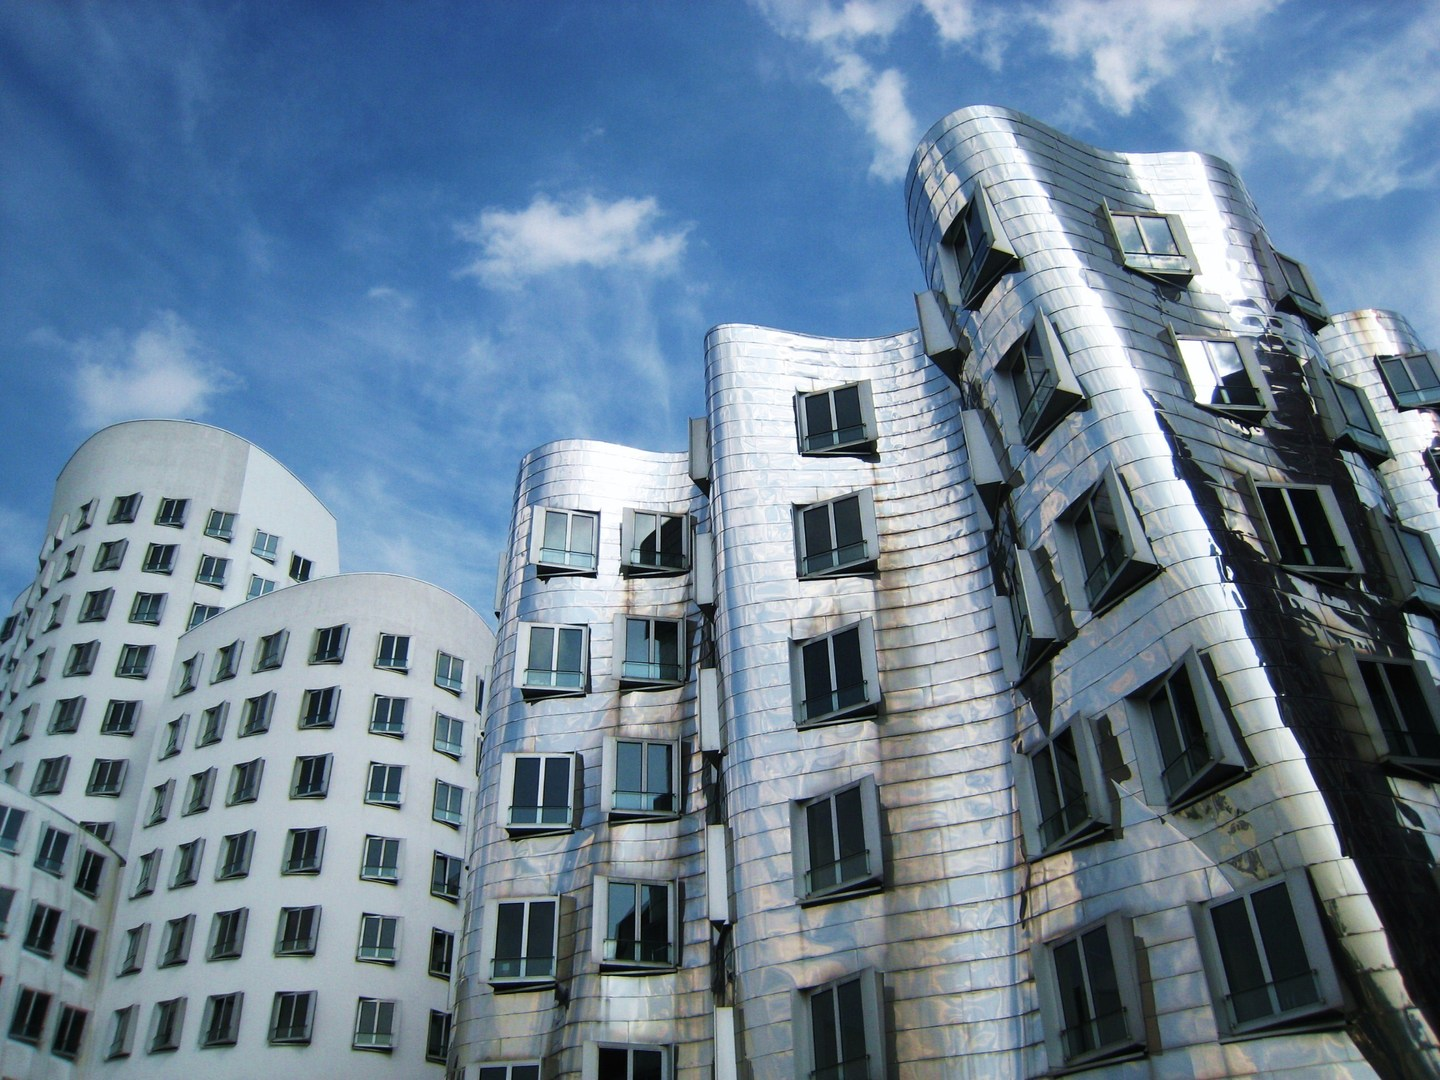 Frank Gehry Architecture Style And Design We Like Frank Gehry Red Maps Blog